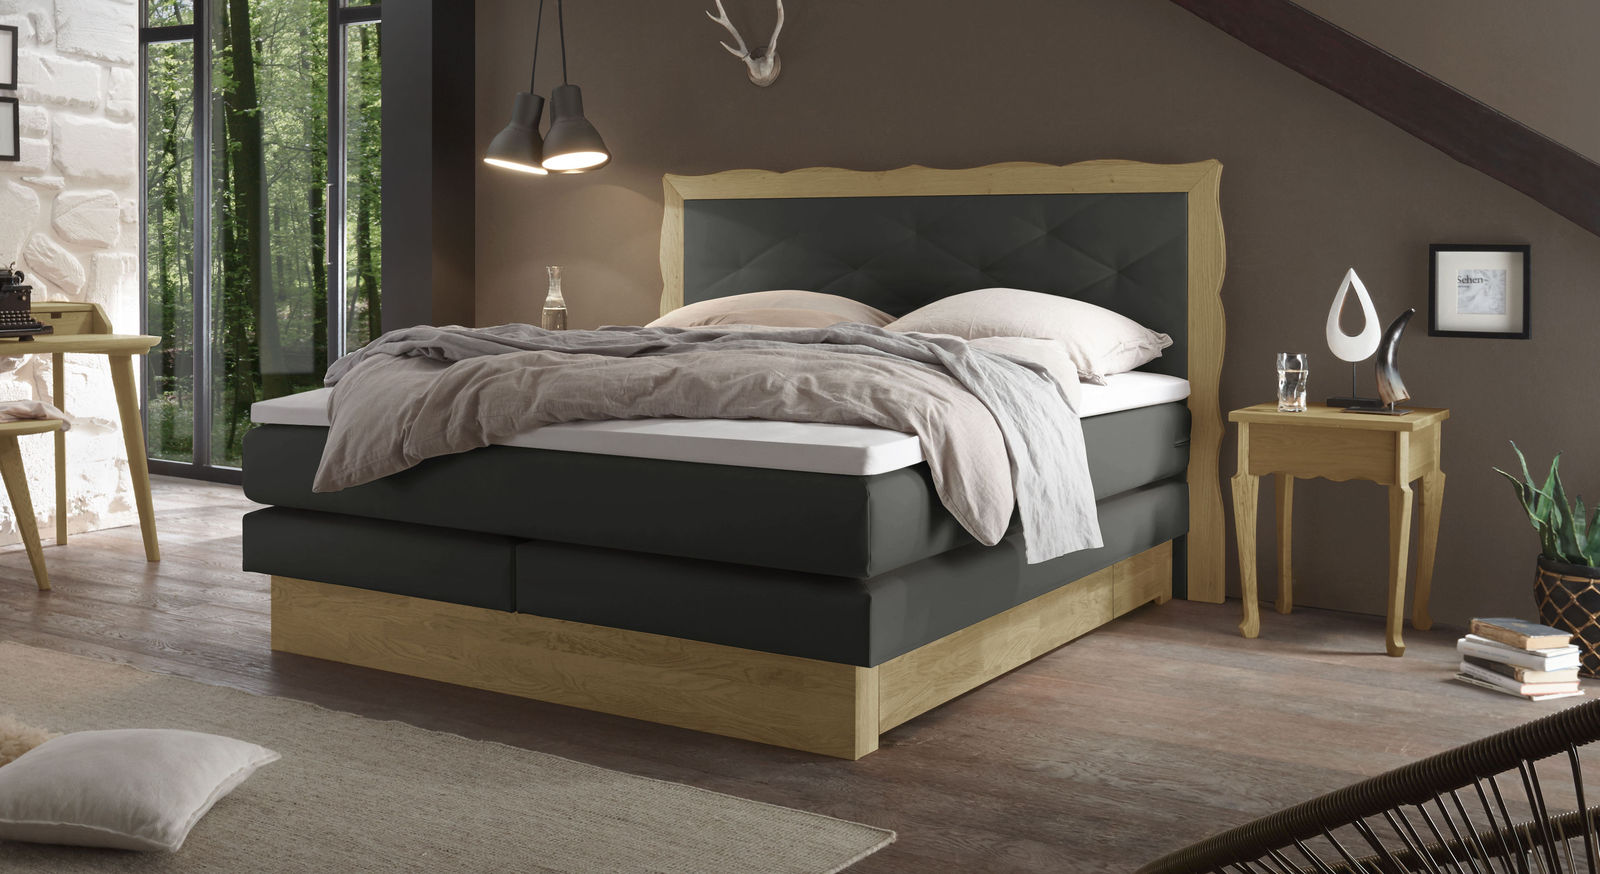 individuell anpassbares boxspringbett mit 2 schubladen. Black Bedroom Furniture Sets. Home Design Ideas